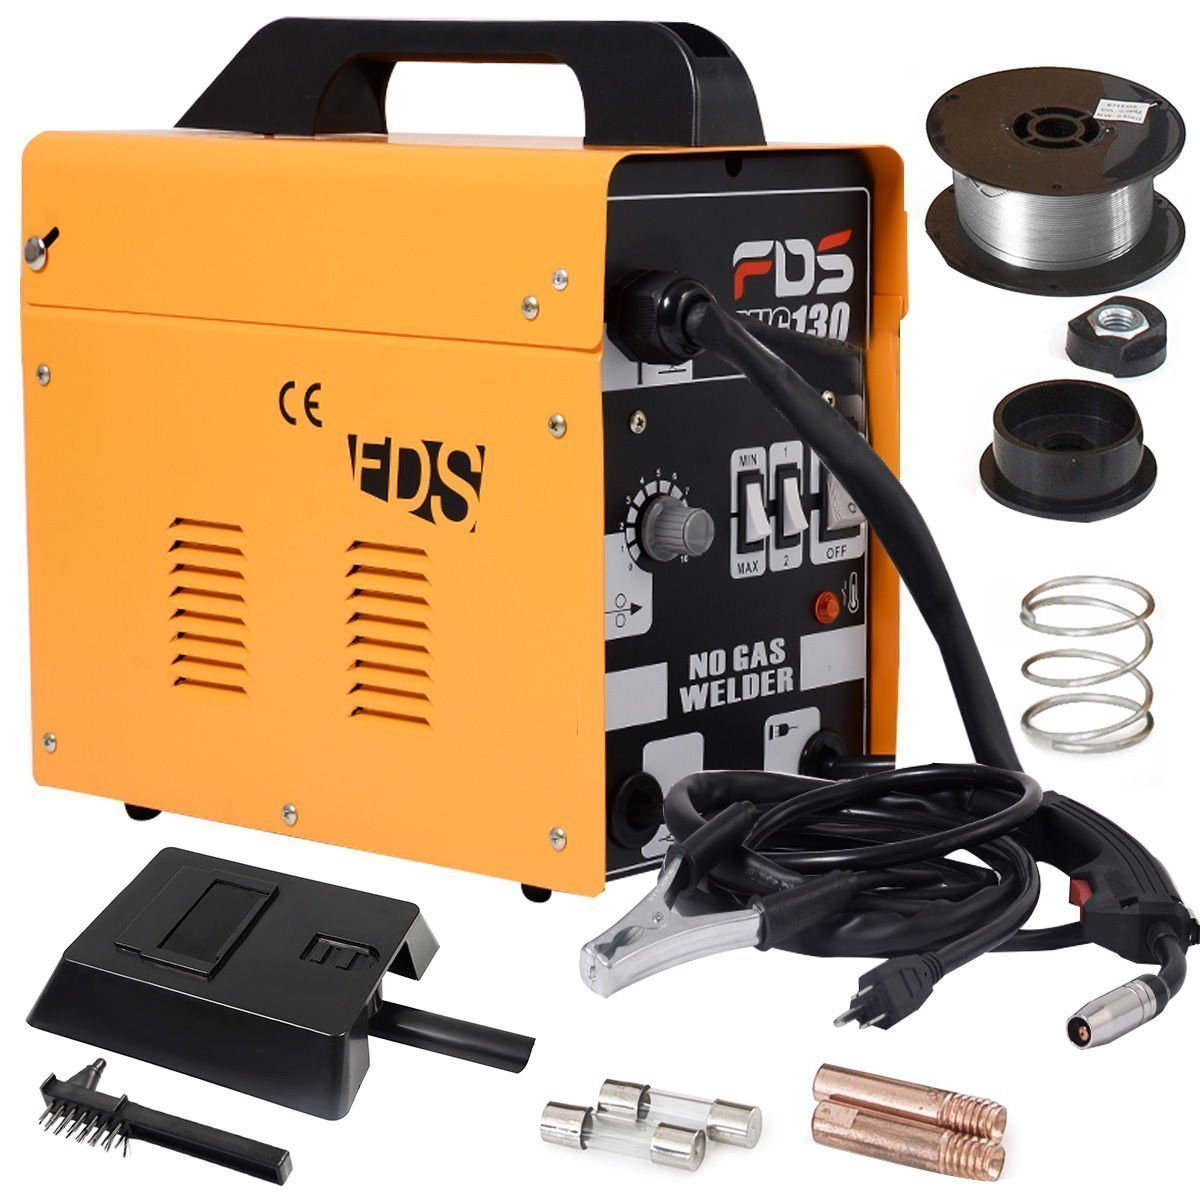 Goplus MIG 130 Welder Flux Core Wire Automatic Feed Welding Machine